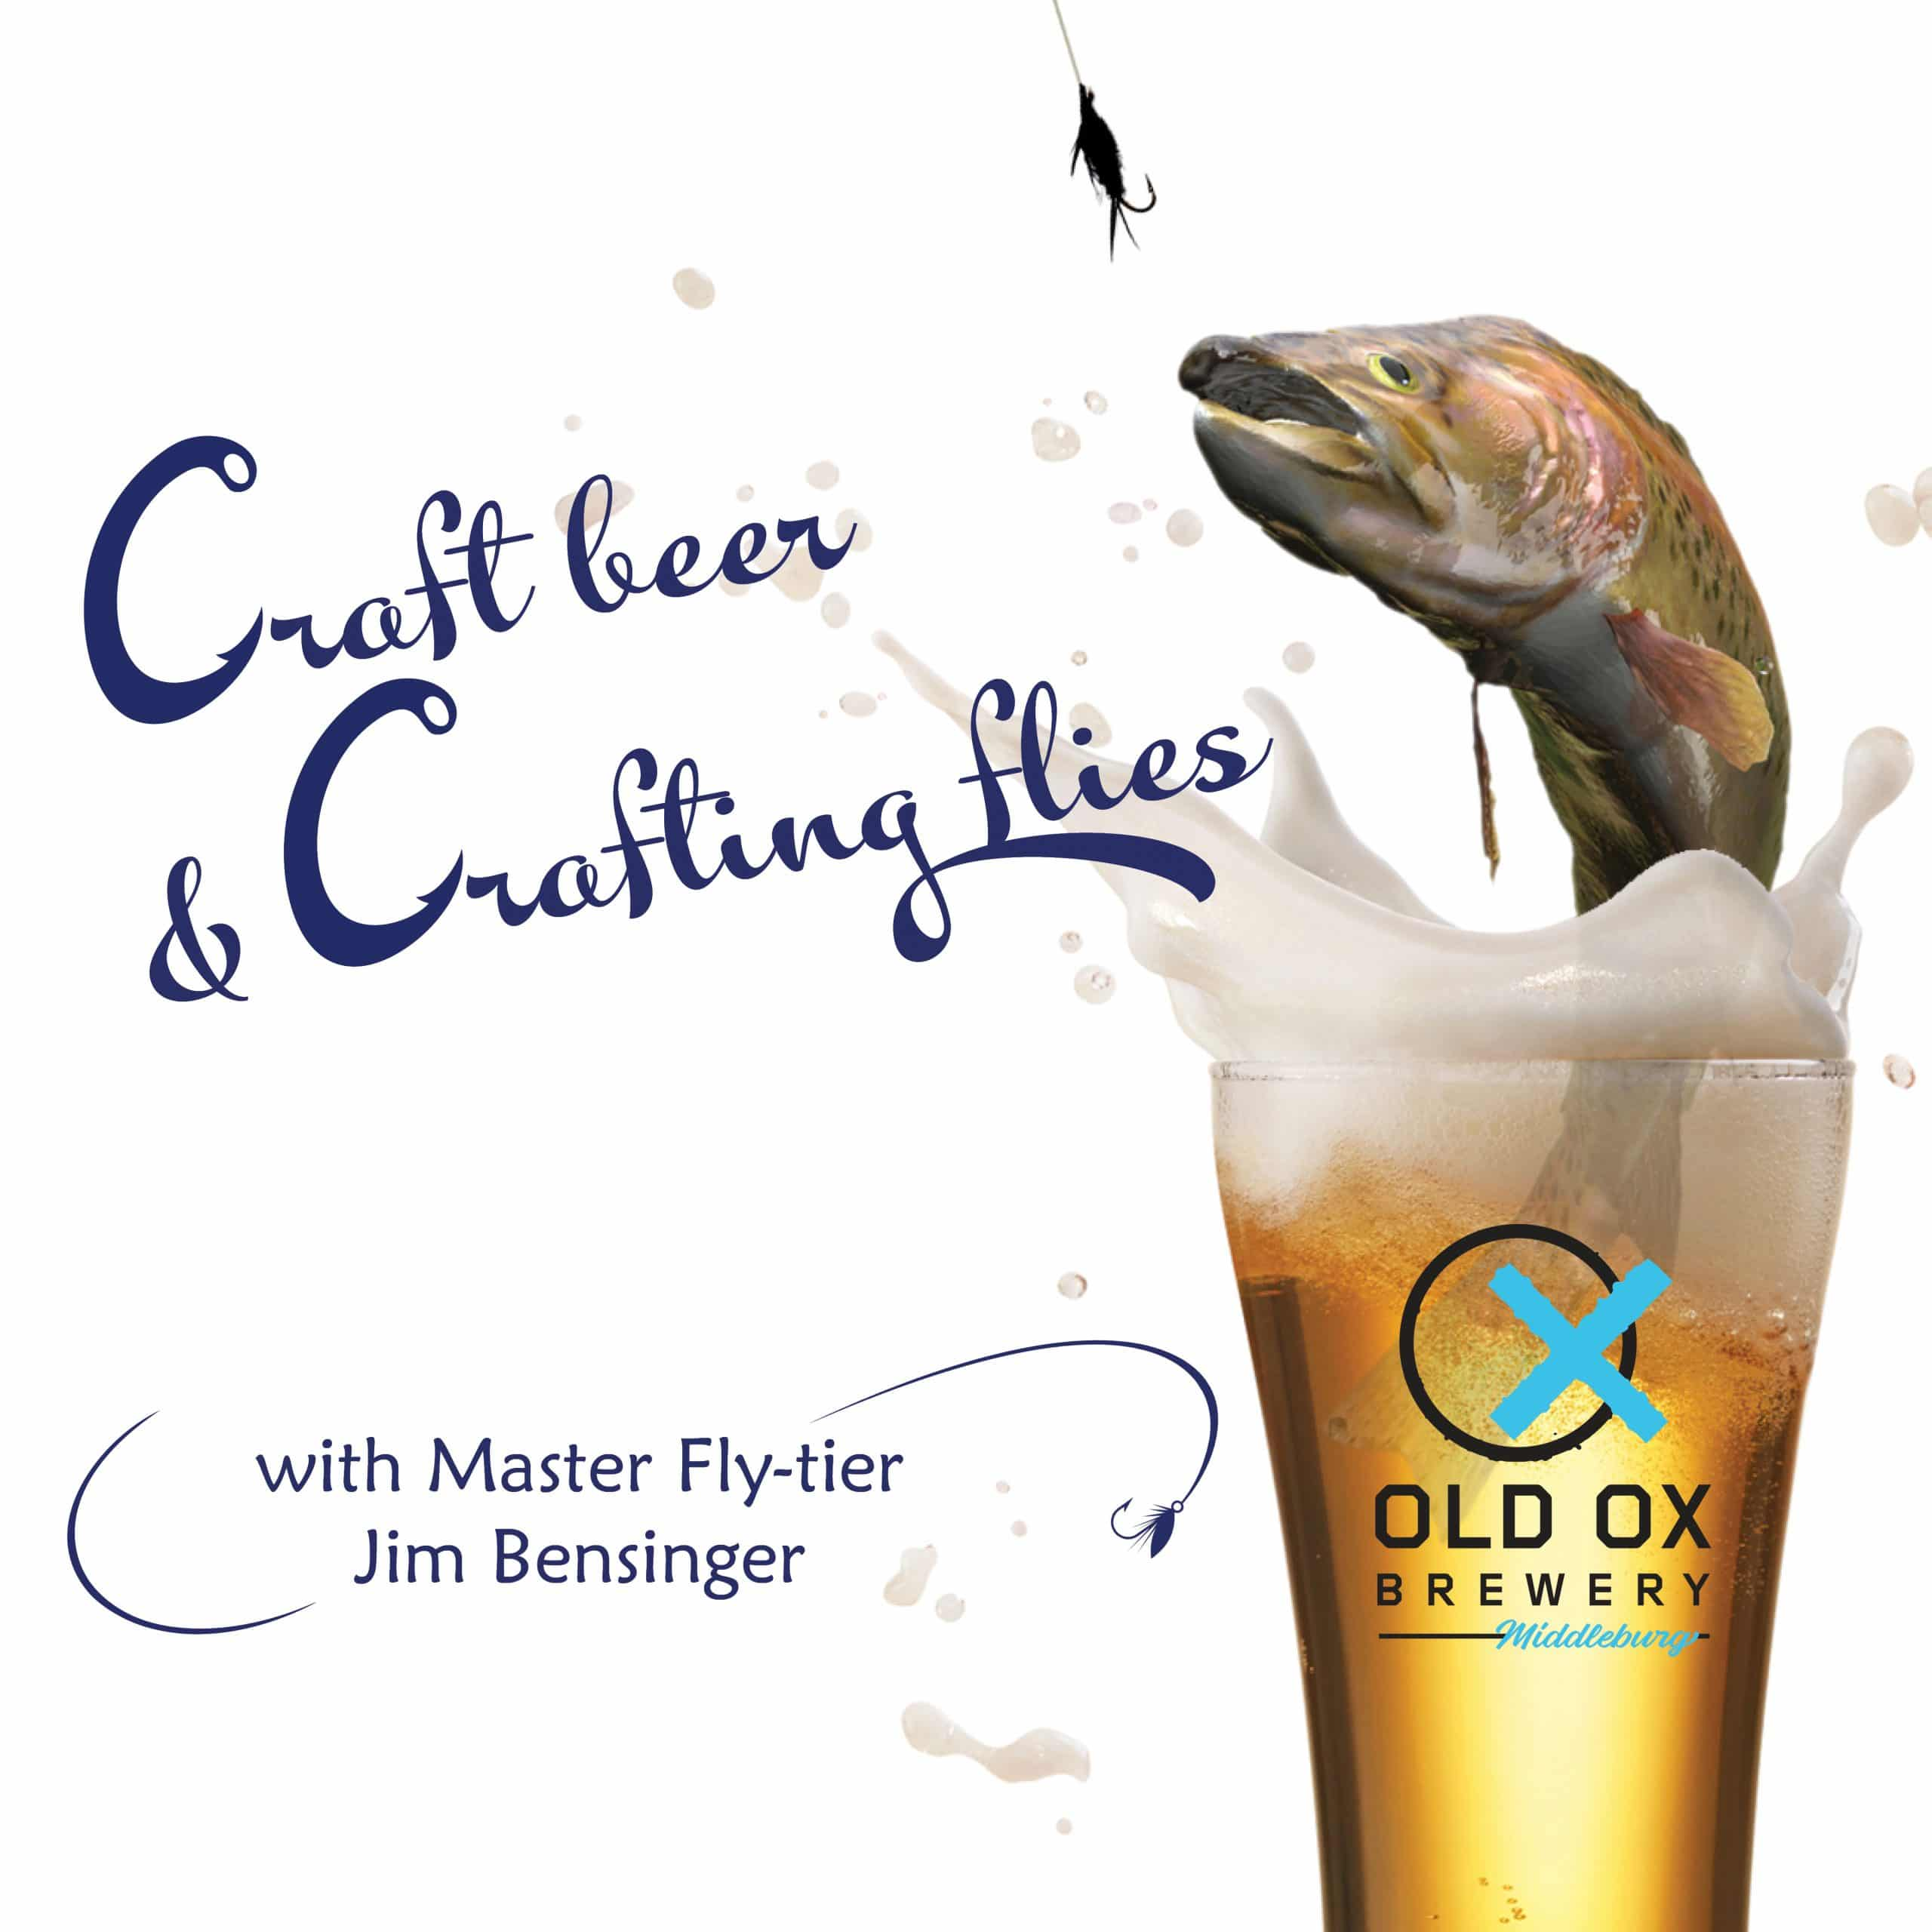 Craft Beer and Crafting Flies flyer